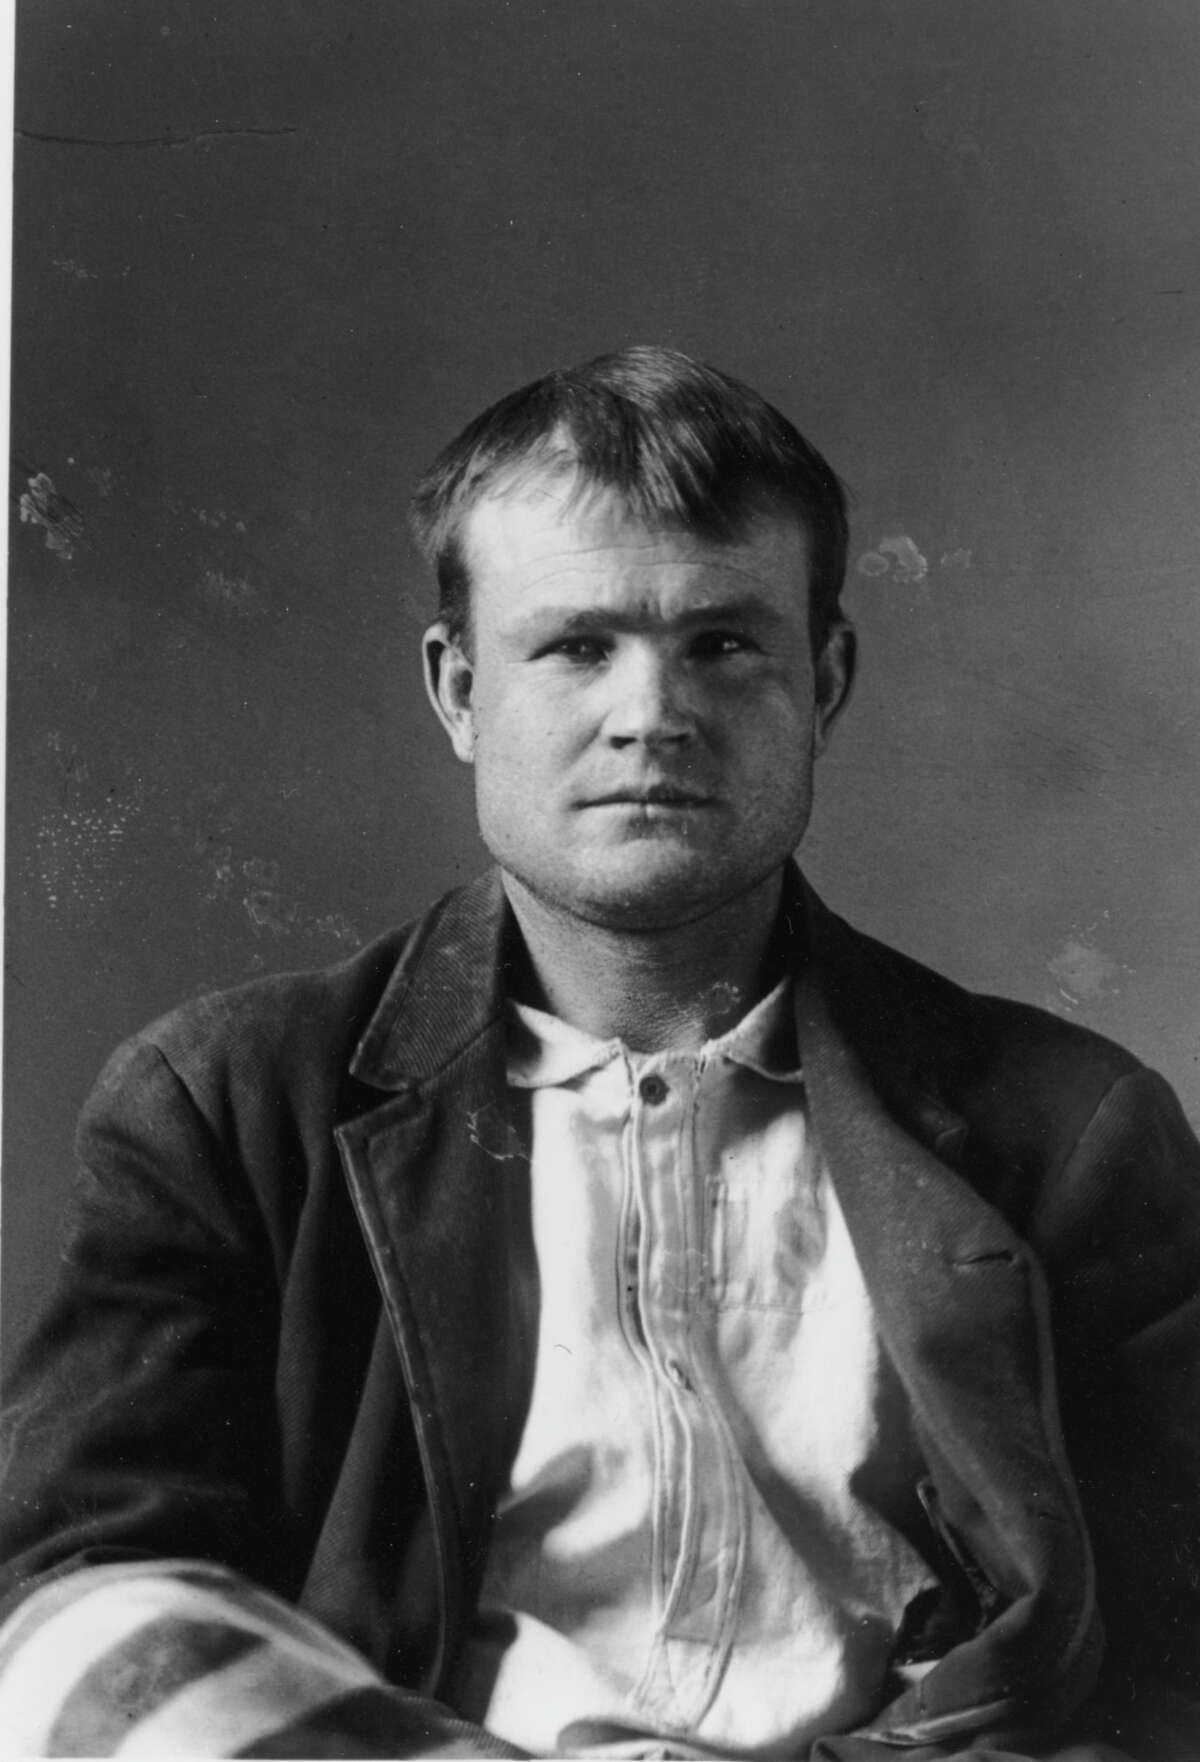 1894: Sometime in his late 20s, Butch Cassidy ran afoul of the law in the state of Wyoming. Law enforcement officials accused Cassidy of stealing horses and racketeering in the area. He was arrested, charged and sentenced to 2-years in prison at the Wyoming State Prison in Laramie where this portrait was created. He was released 18 months into his sentence thanks to then Governor William Alford Richards.